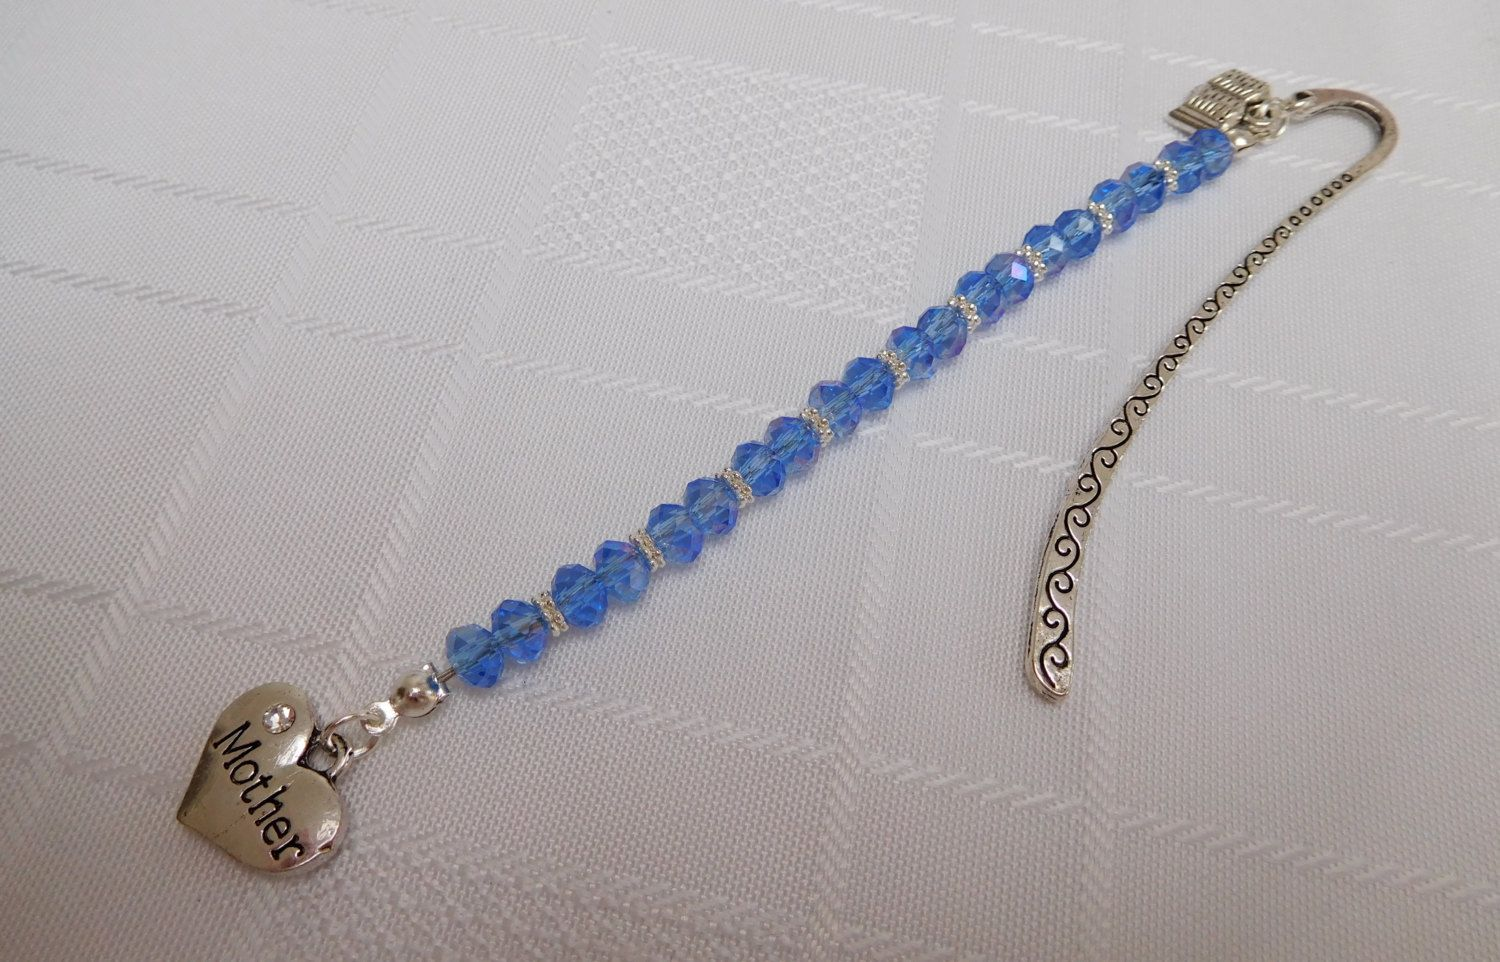 Blue & Silver Beaded 'Mother' Bookmark with Charms, Tibetan Silver Bookmark, Mothers Day Gift by WendyMCreations on Etsy